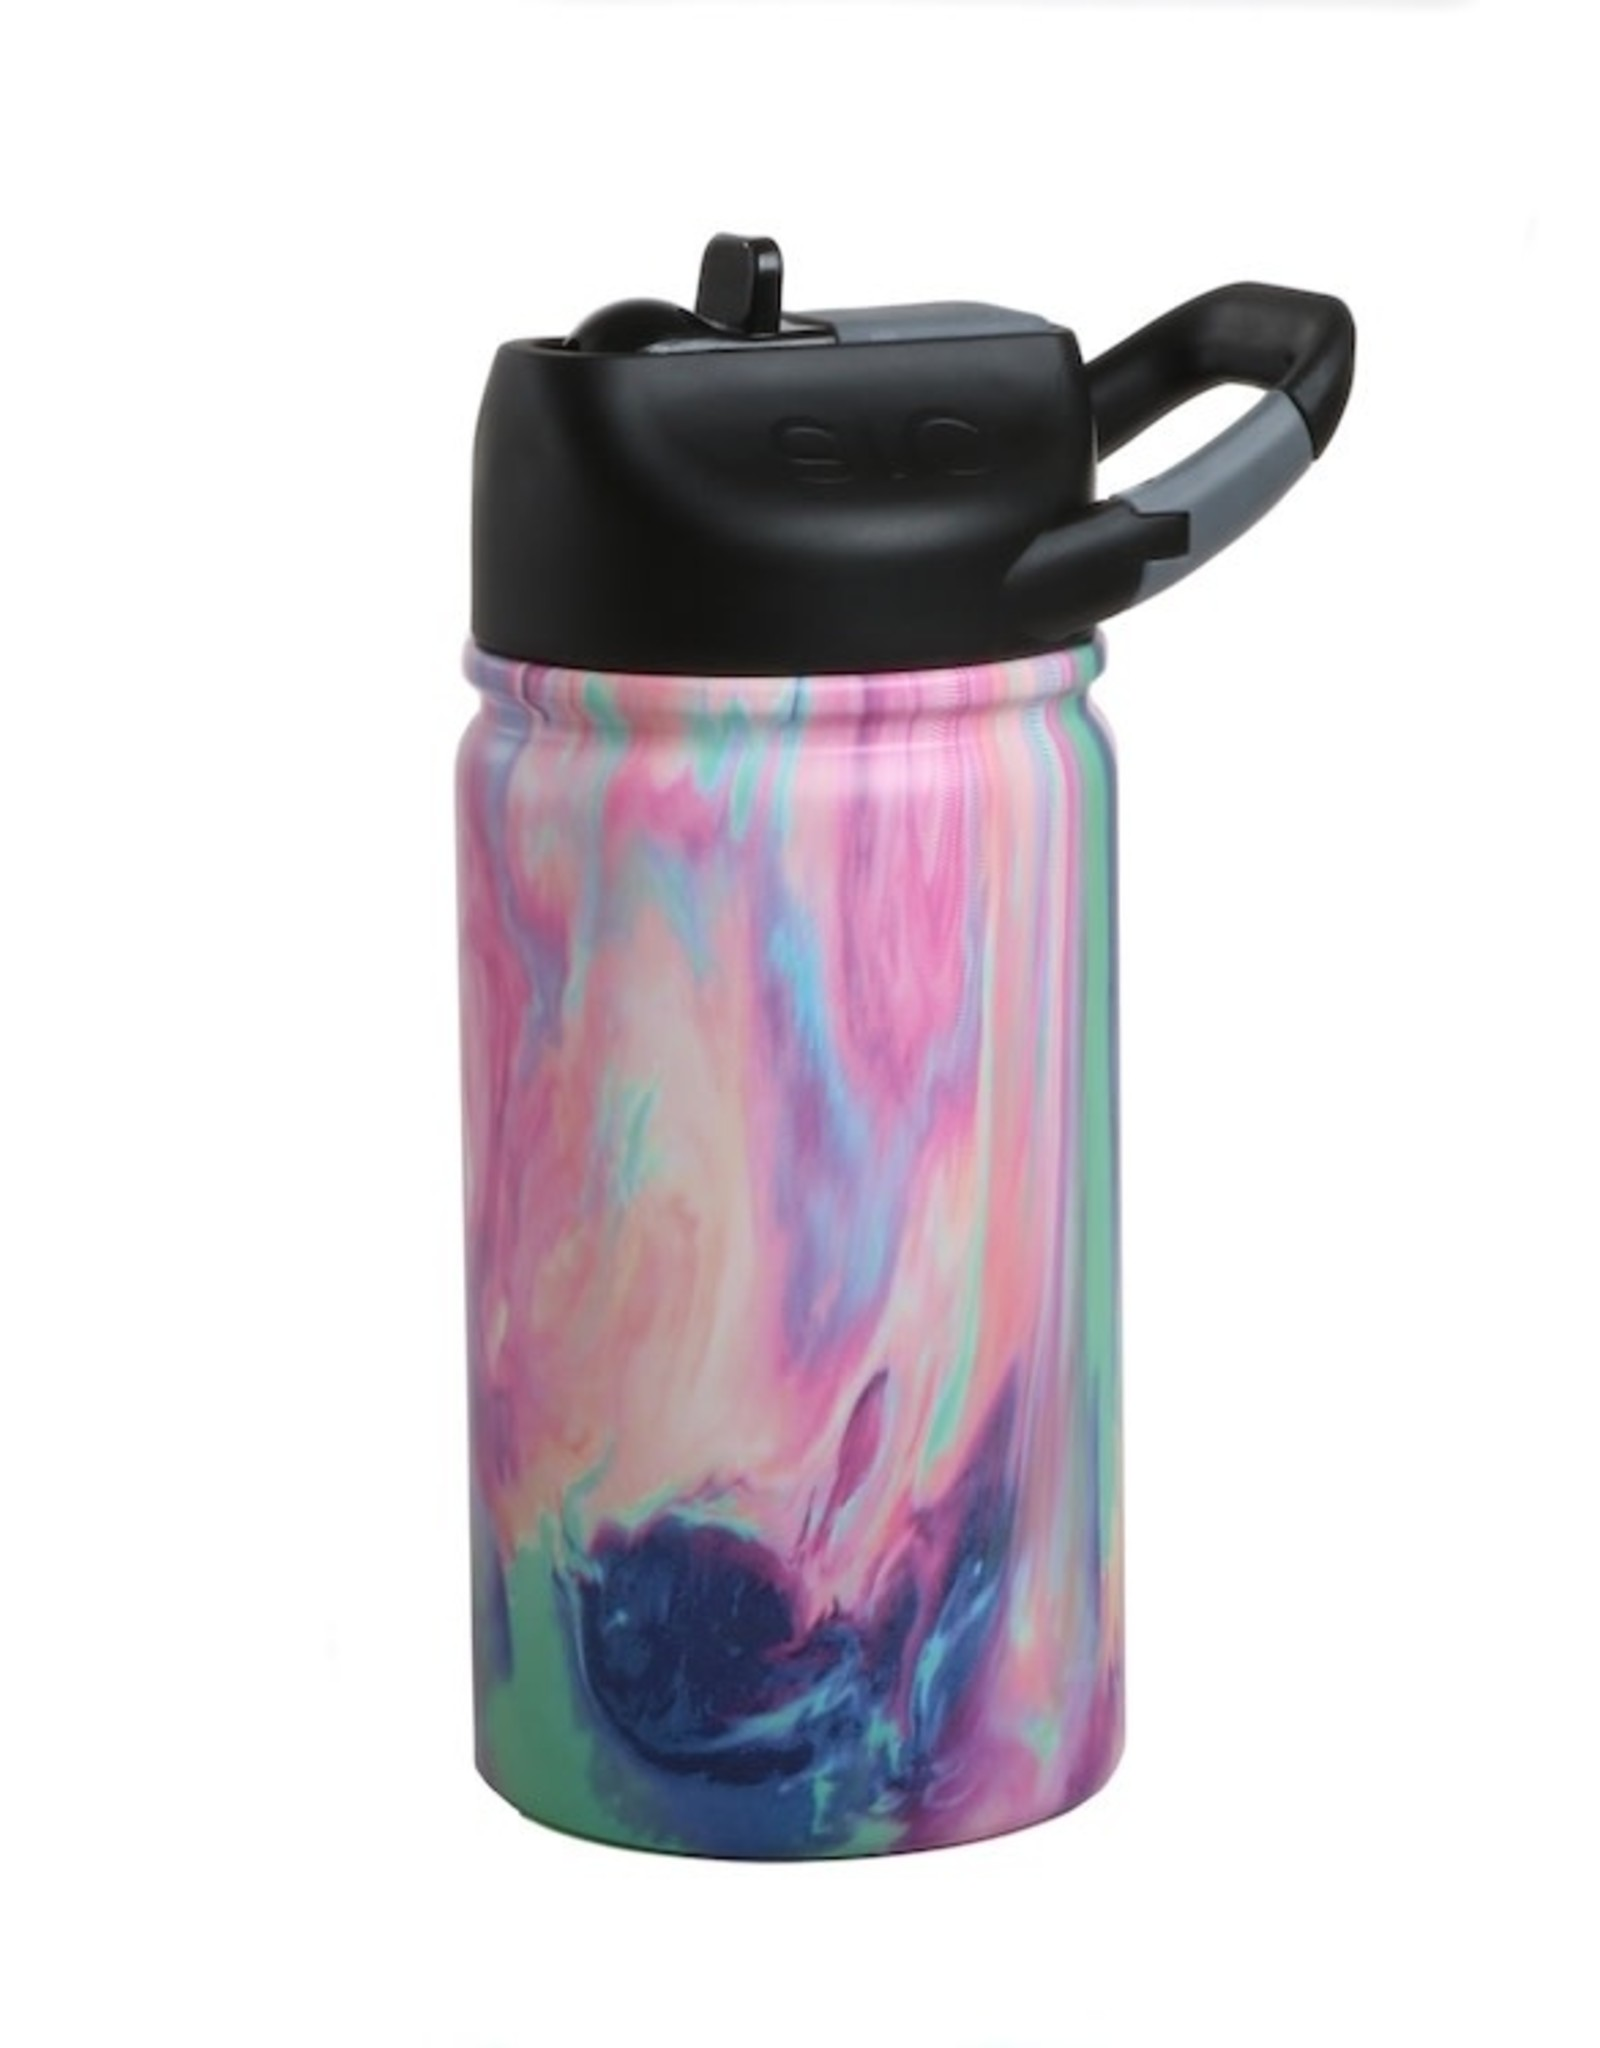 SIC 12 oz Cotton Candy Stainless Steel Water Bottle